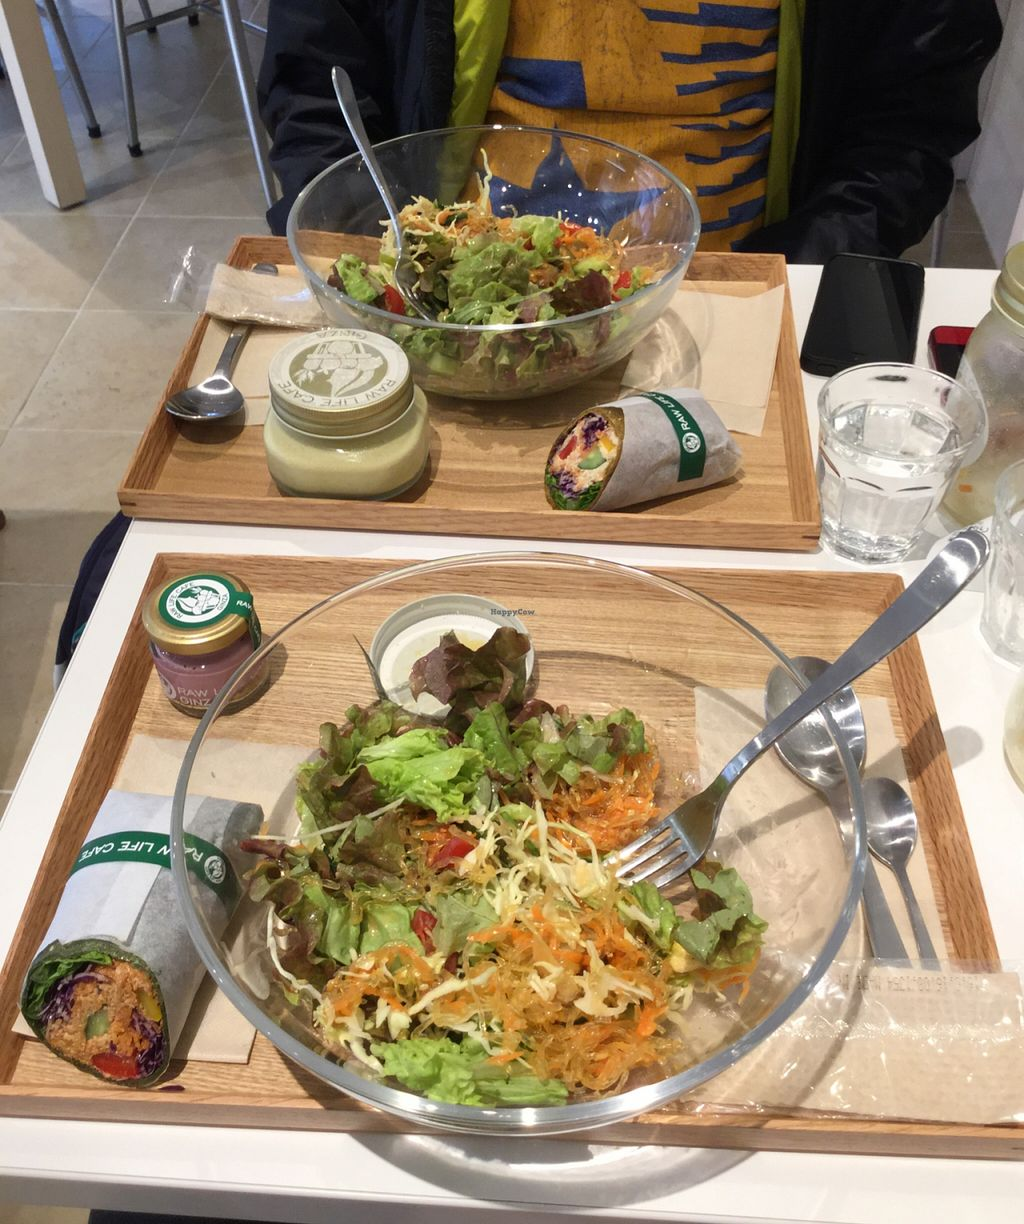 "Photo of CLOSED: Ginza Raw Life Cafe  by <a href=""/members/profile/SpokeyDoke"">SpokeyDoke</a> <br/>Korean salads, with wraps, blueberry cheesecake and corn soup, all very tasty! <br/> April 7, 2016  - <a href='/contact/abuse/image/64451/143265'>Report</a>"